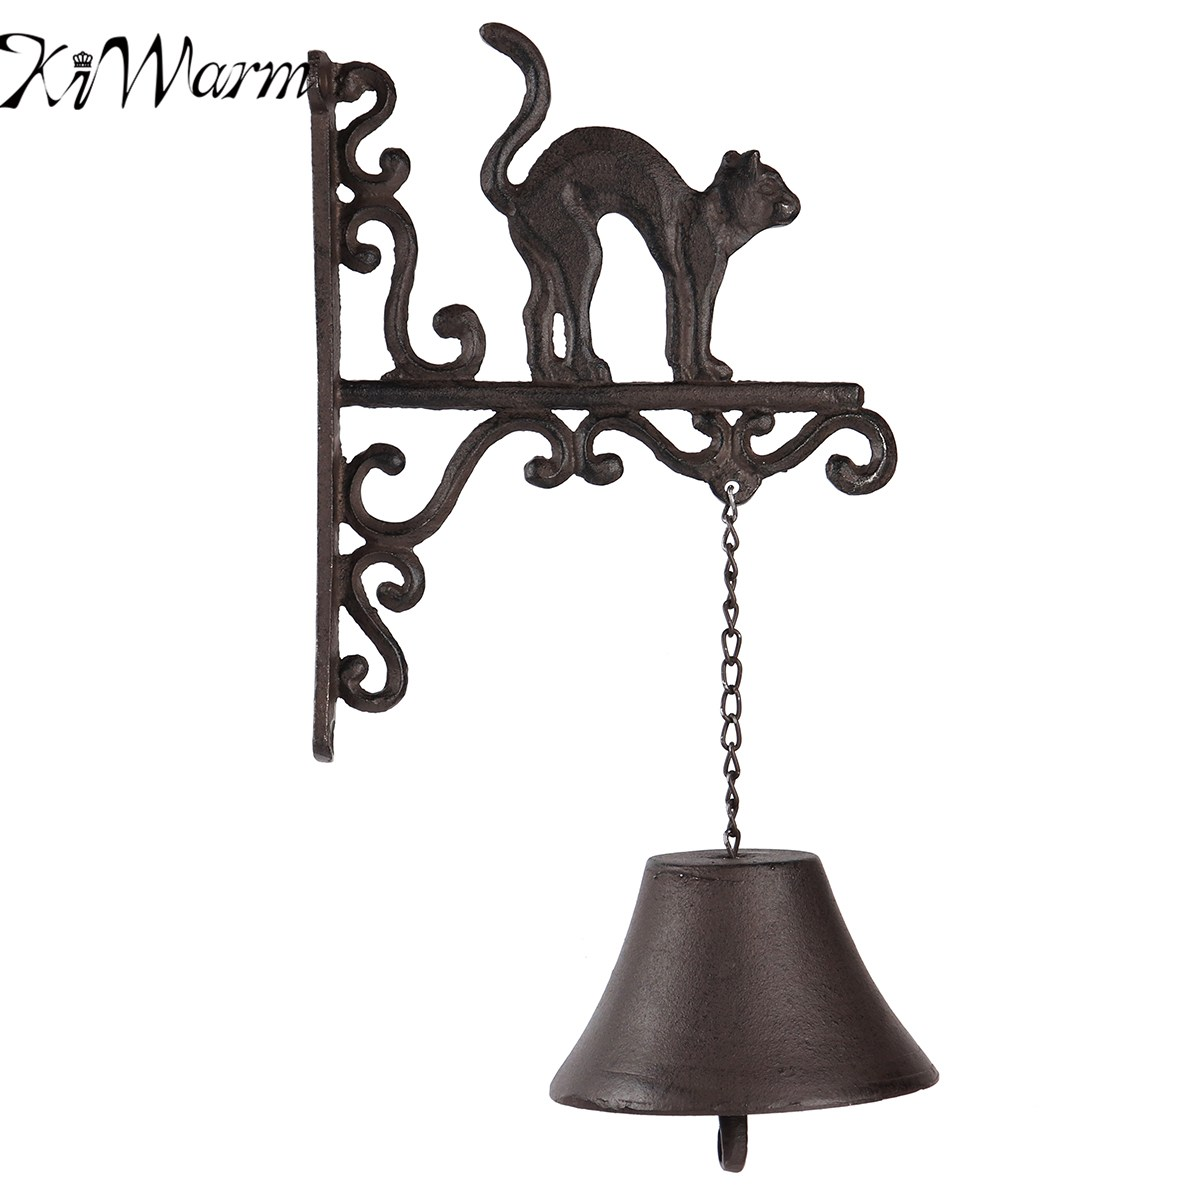 KiWarm Hot Sale Cast Iron Door Bell Metal Wall Mounted Bend Back Cat Design for Home Garden Hanging Ornament